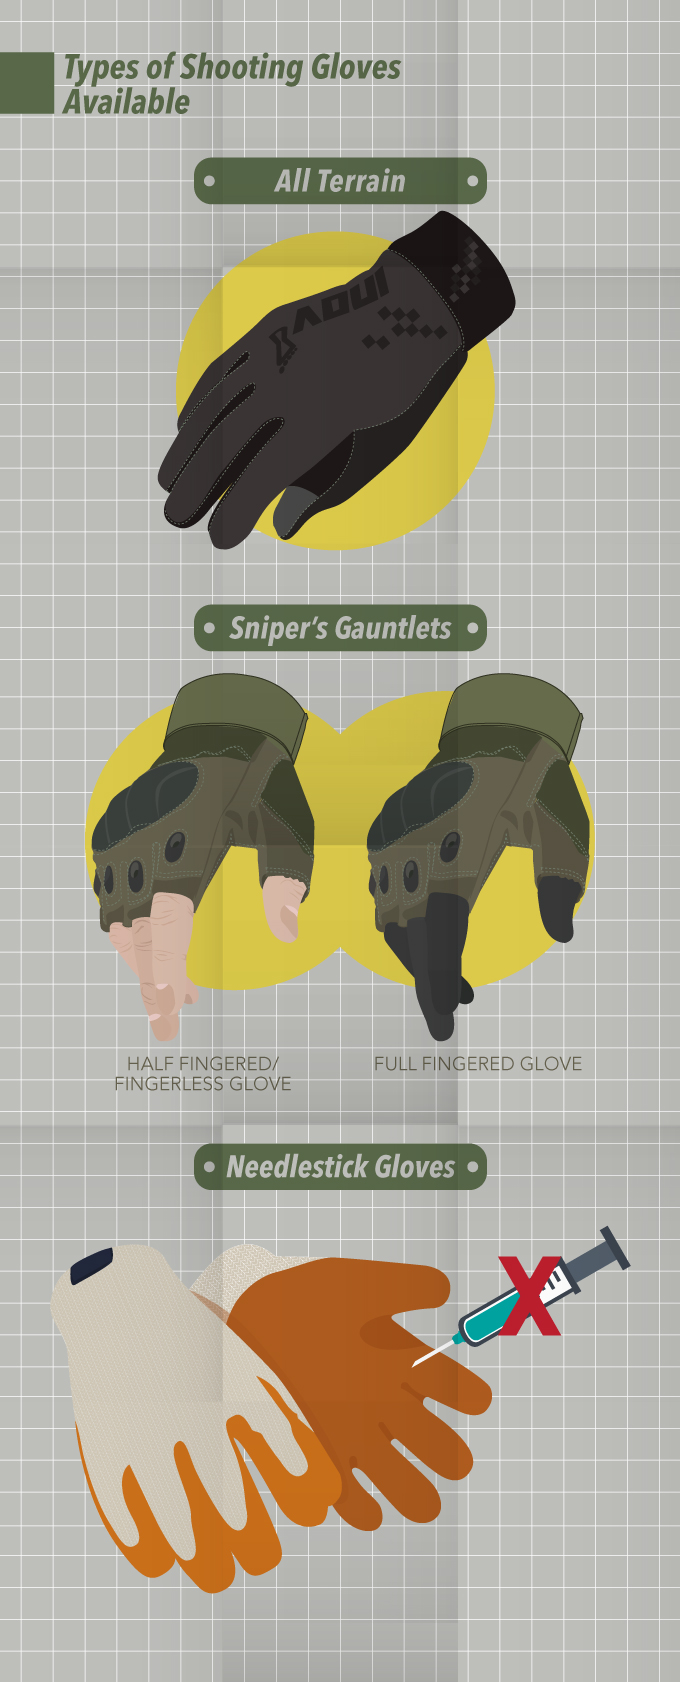 Types of Shooting Gloves